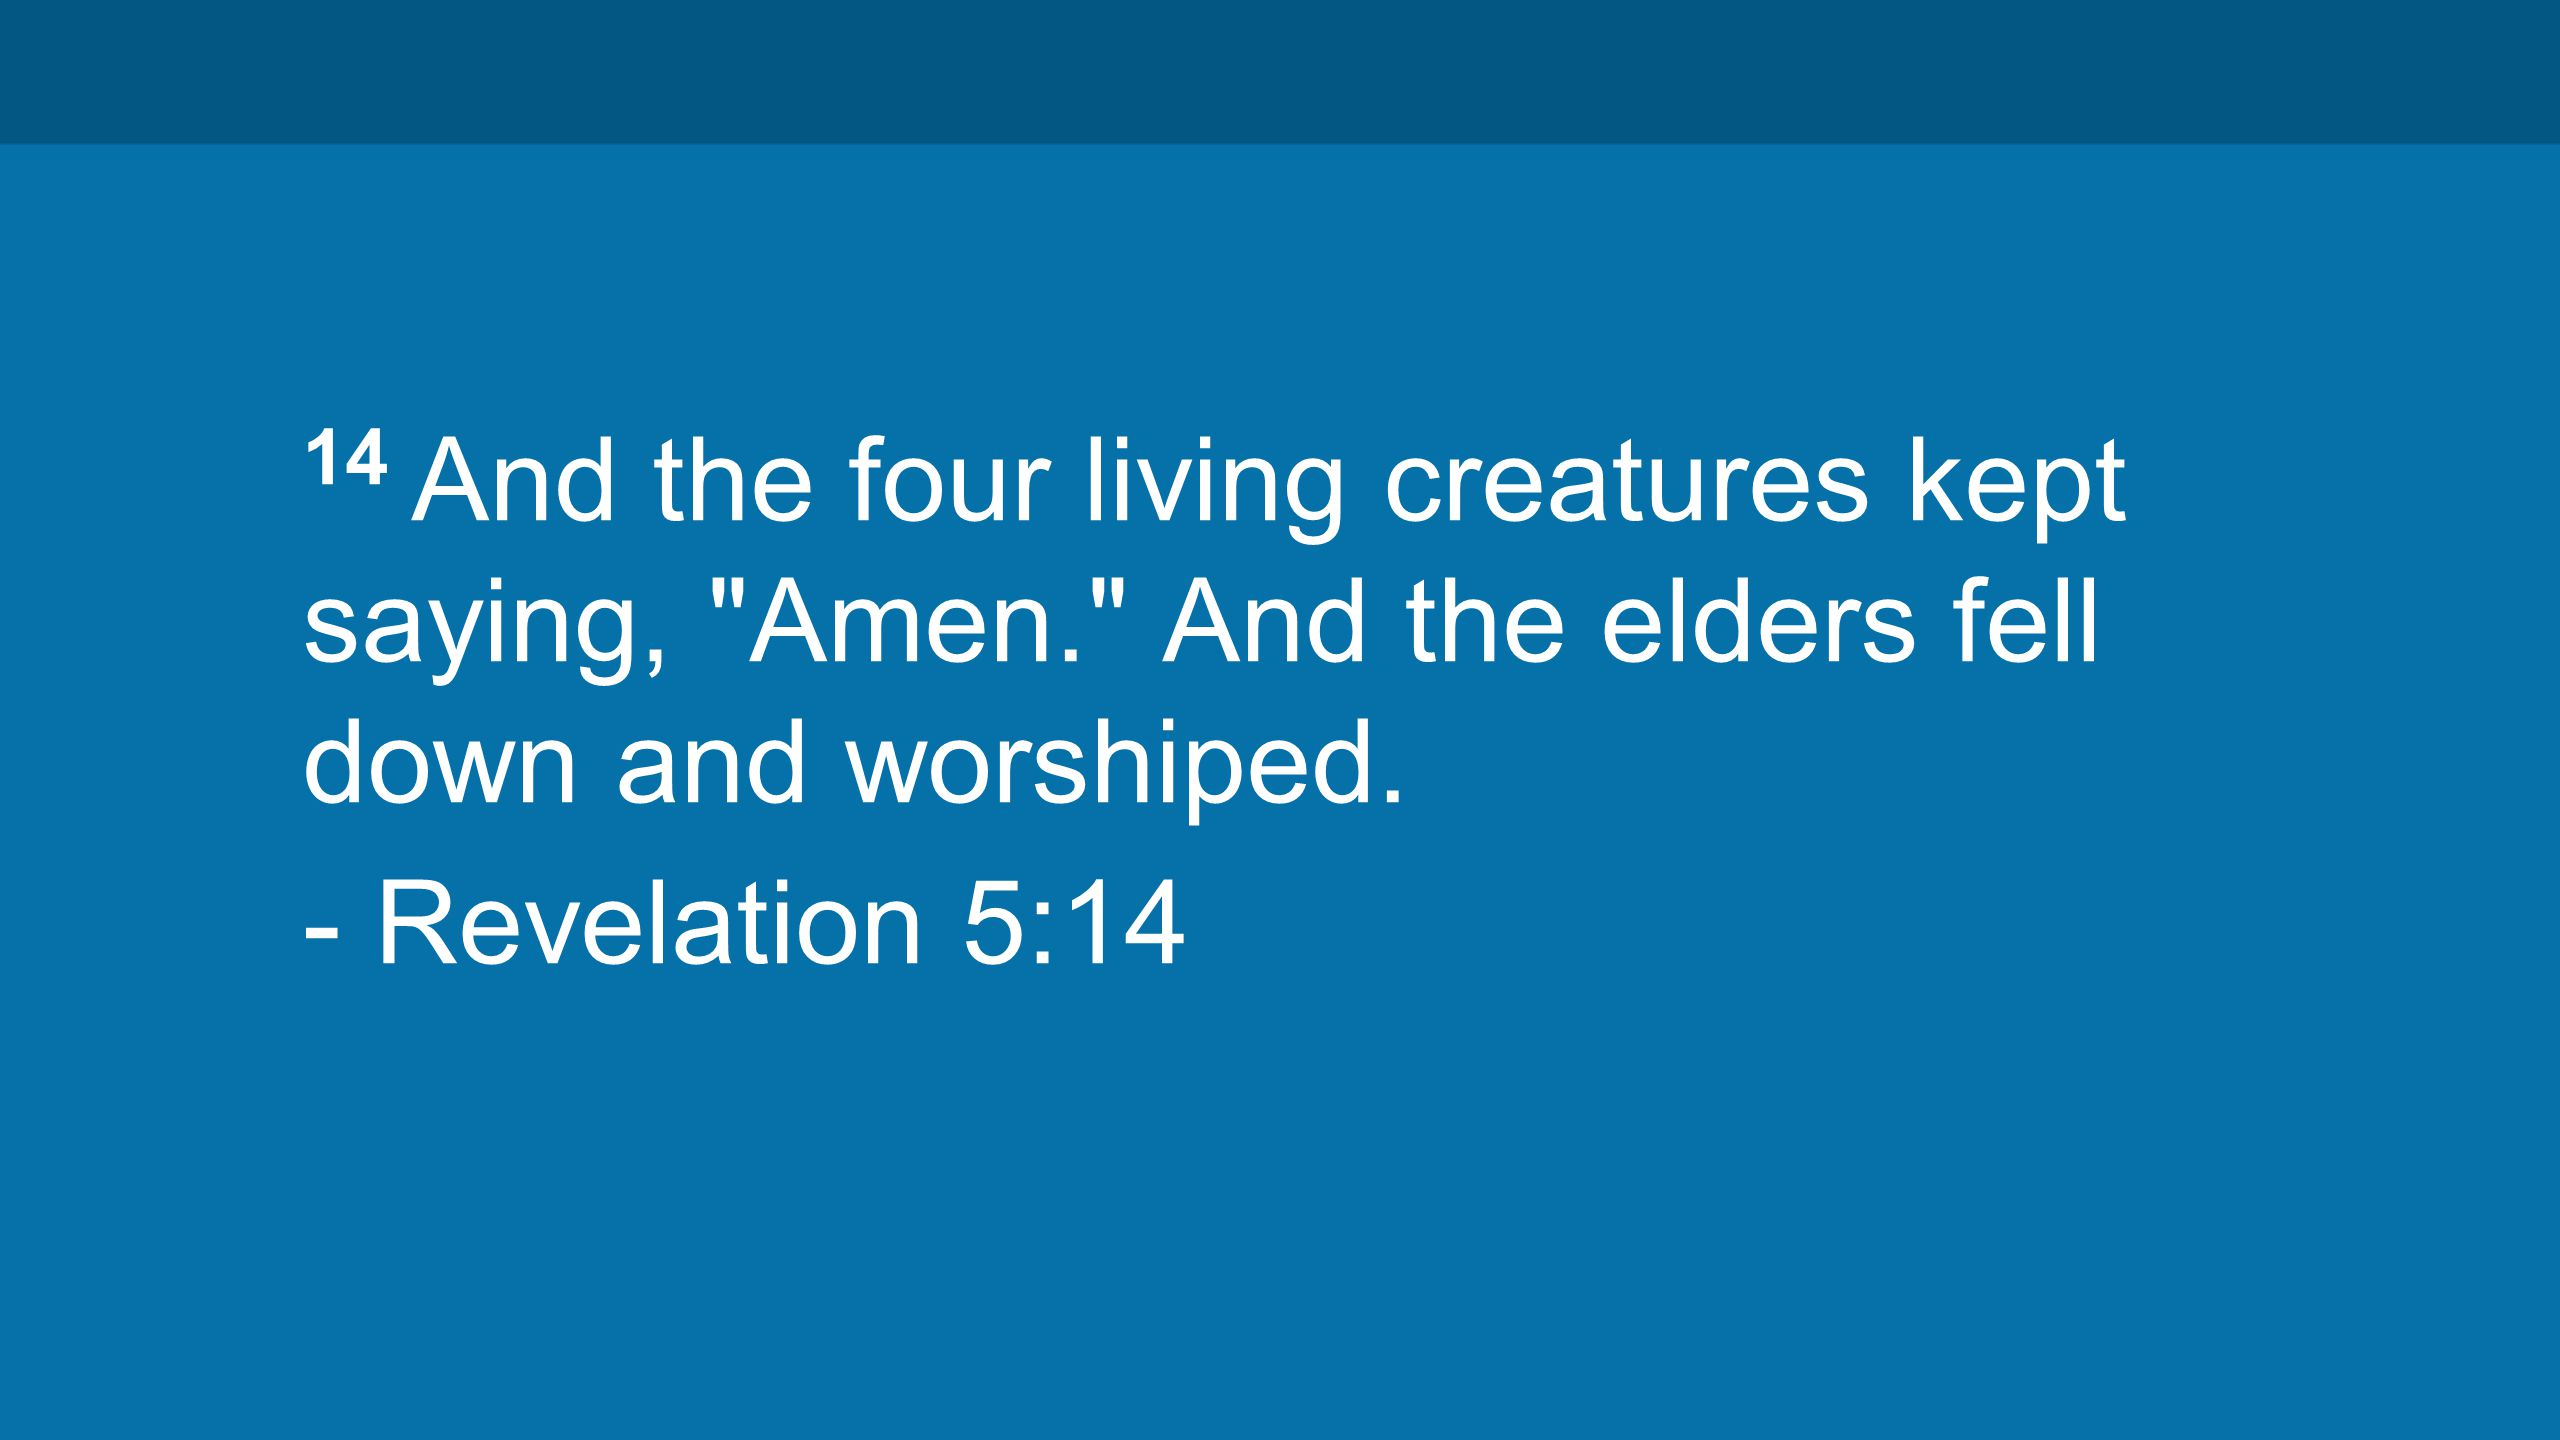 14 And the four living creatures kept saying, Amen. And the elders fell down and worshiped.